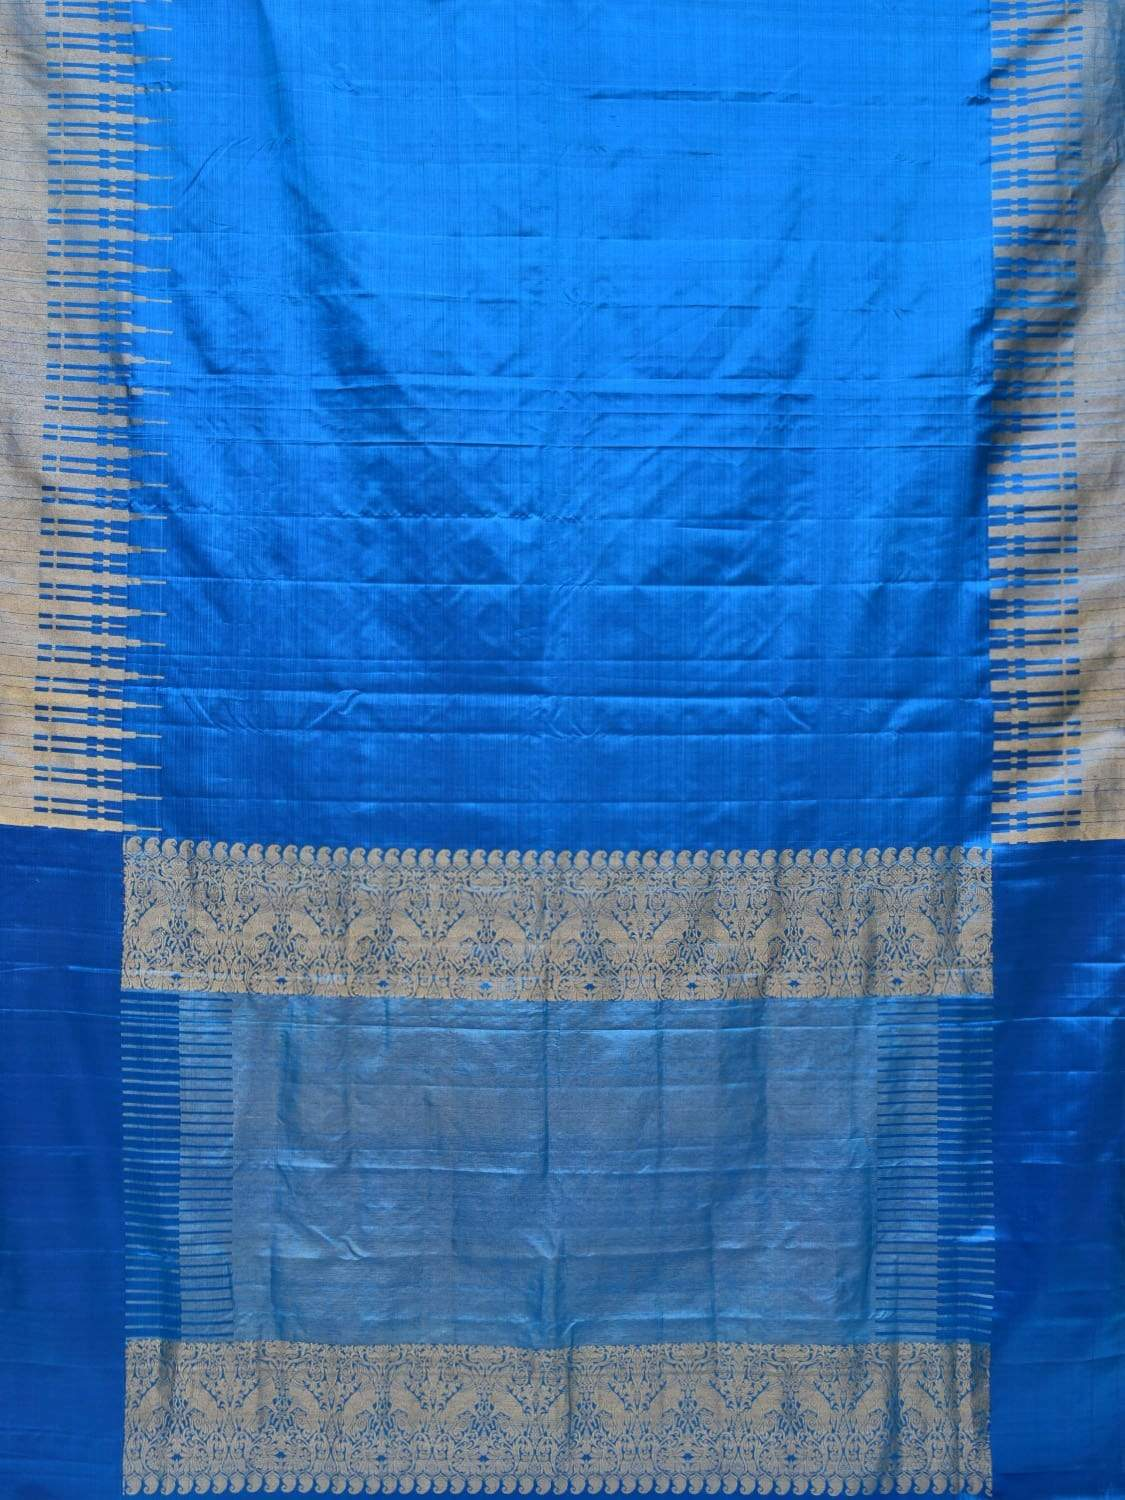 Blue Kanchipuram Silk Handloom Saree with Border Temple Design k0496